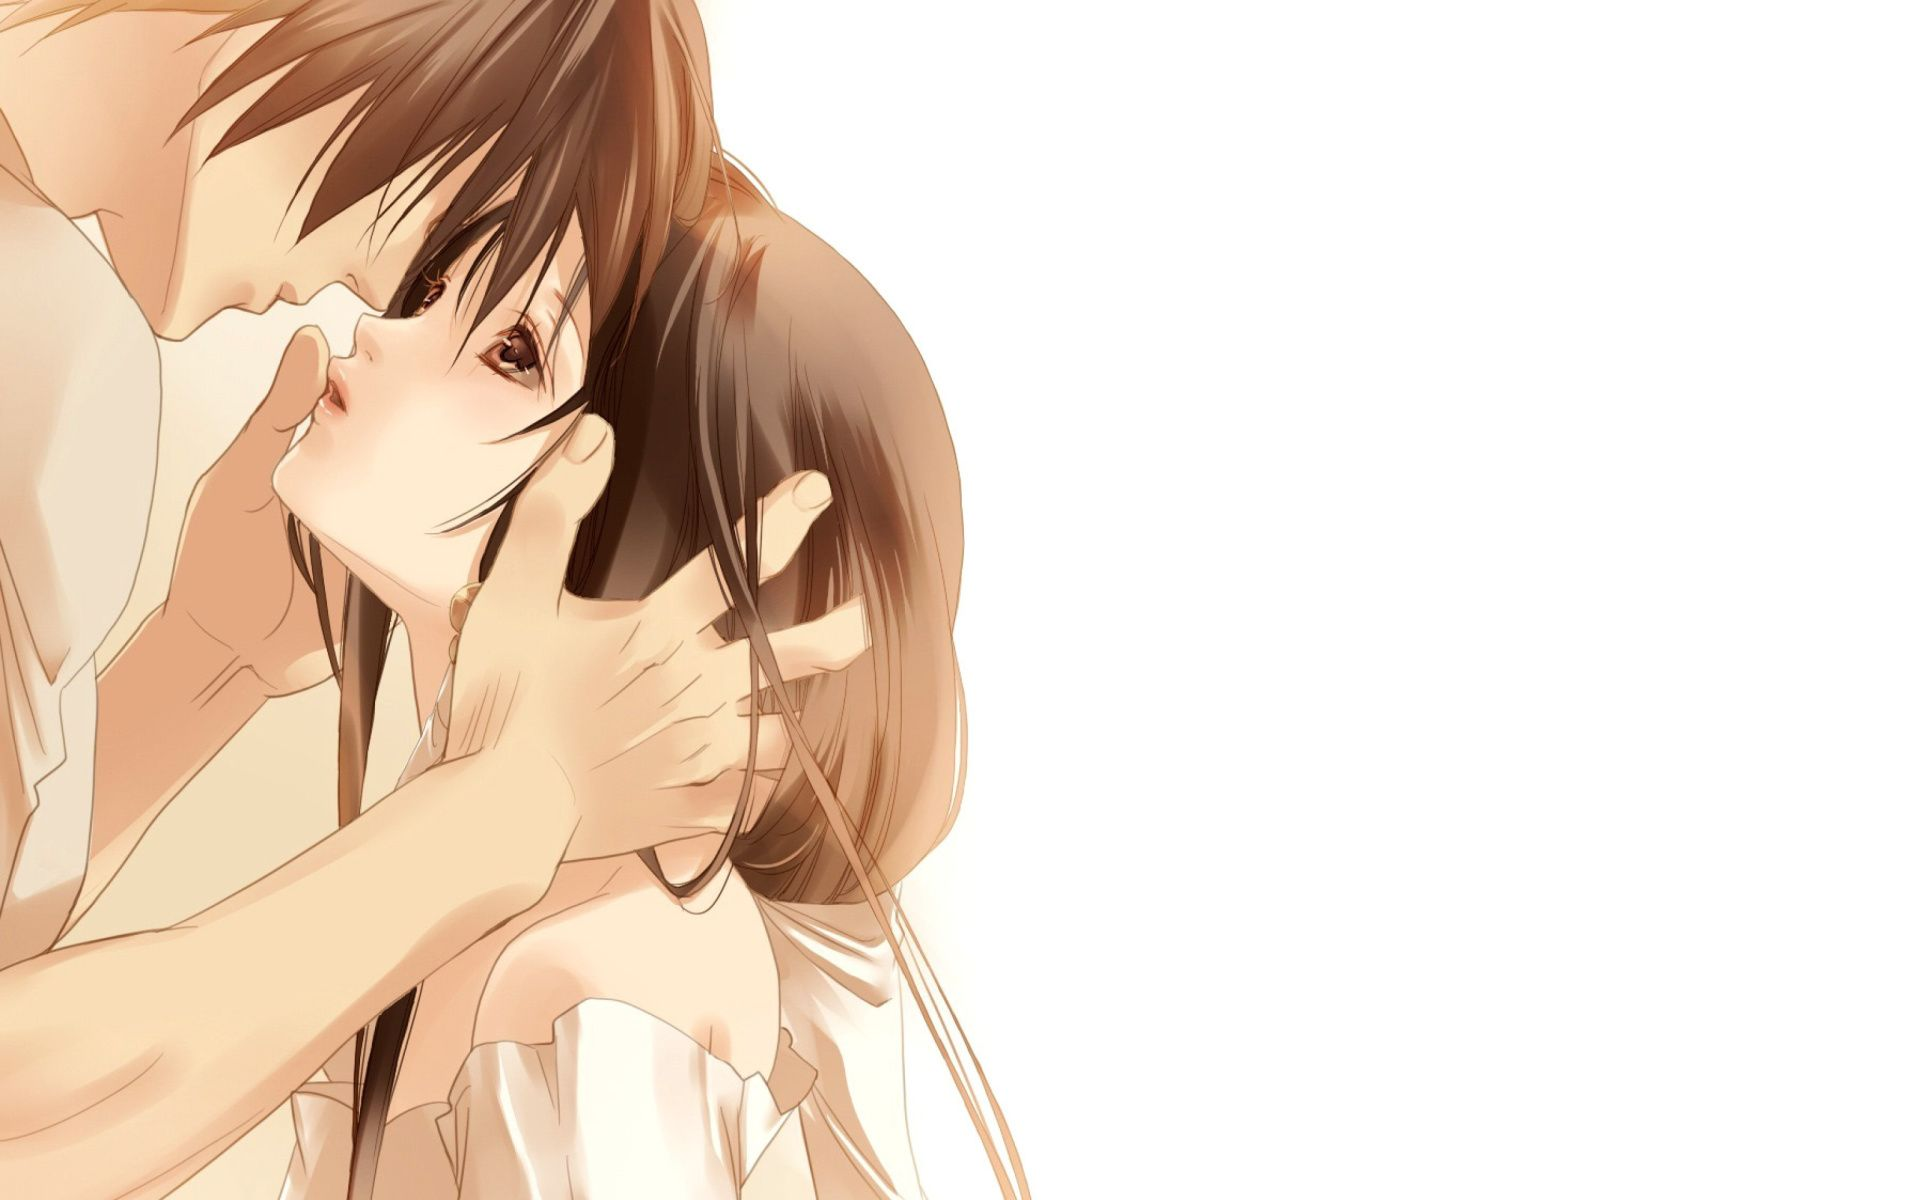 romantic anime couples wallpapers hd images desktop free download